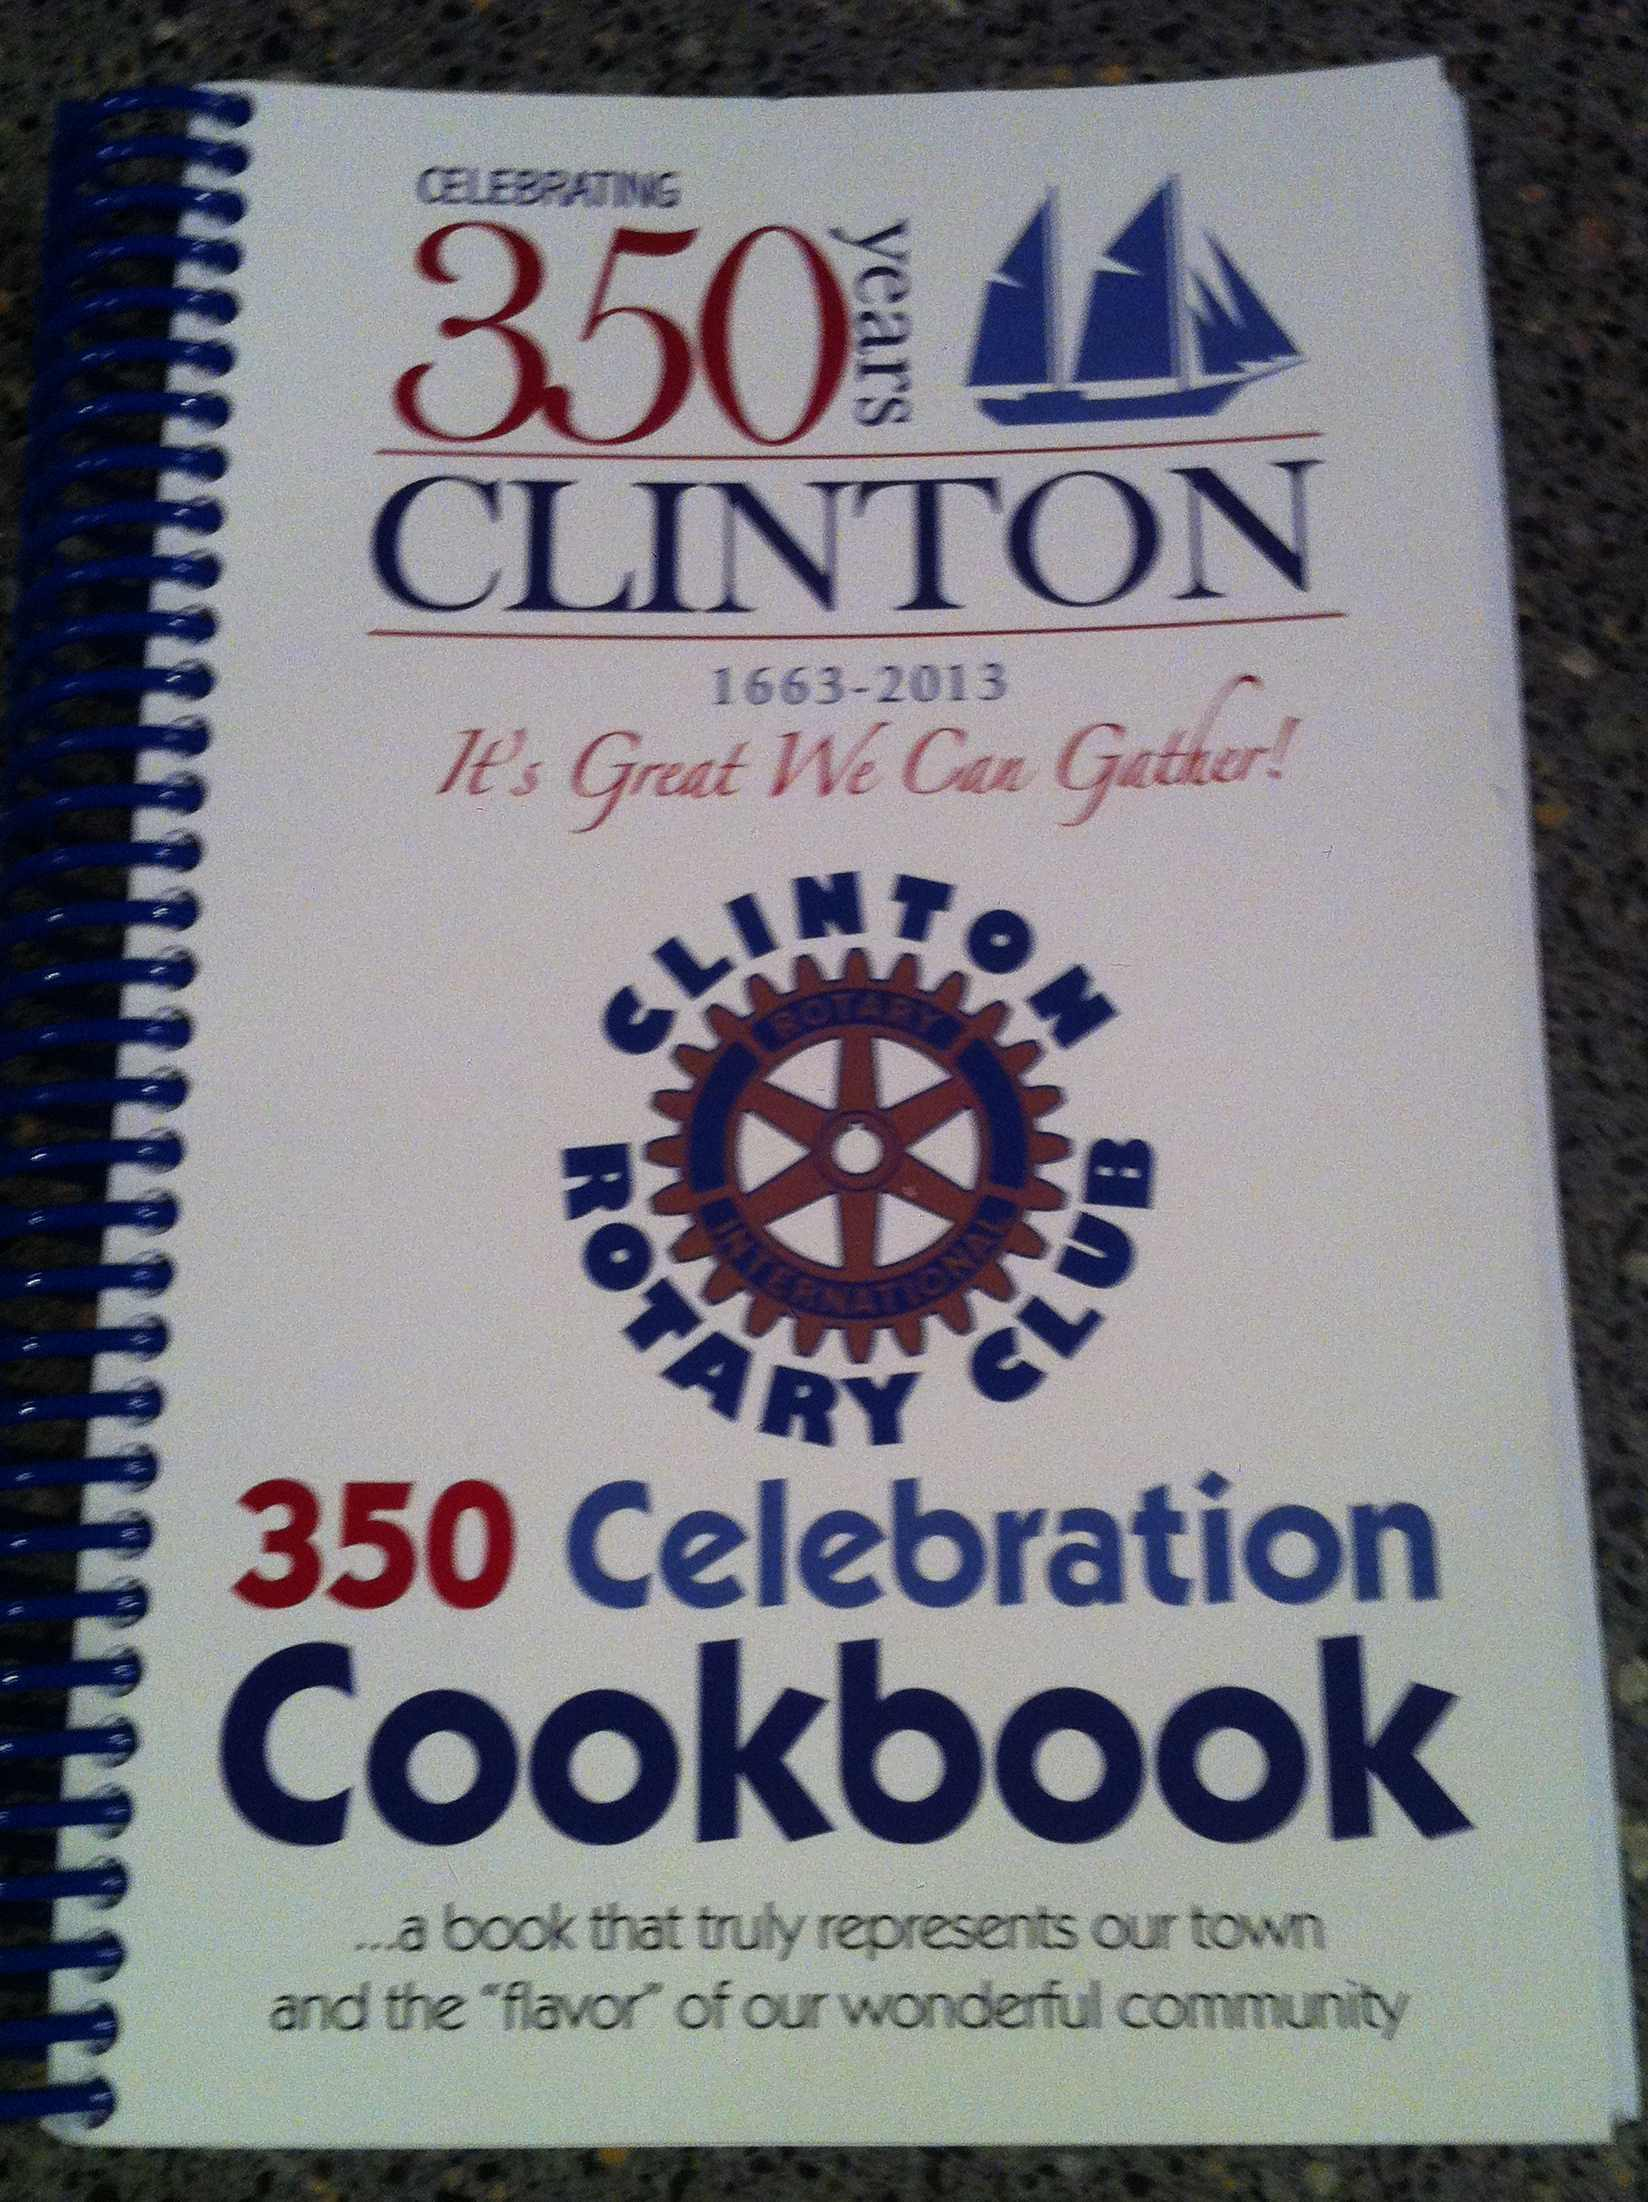 Celebrating 350 Years  The Clinton Rotary Cookbook